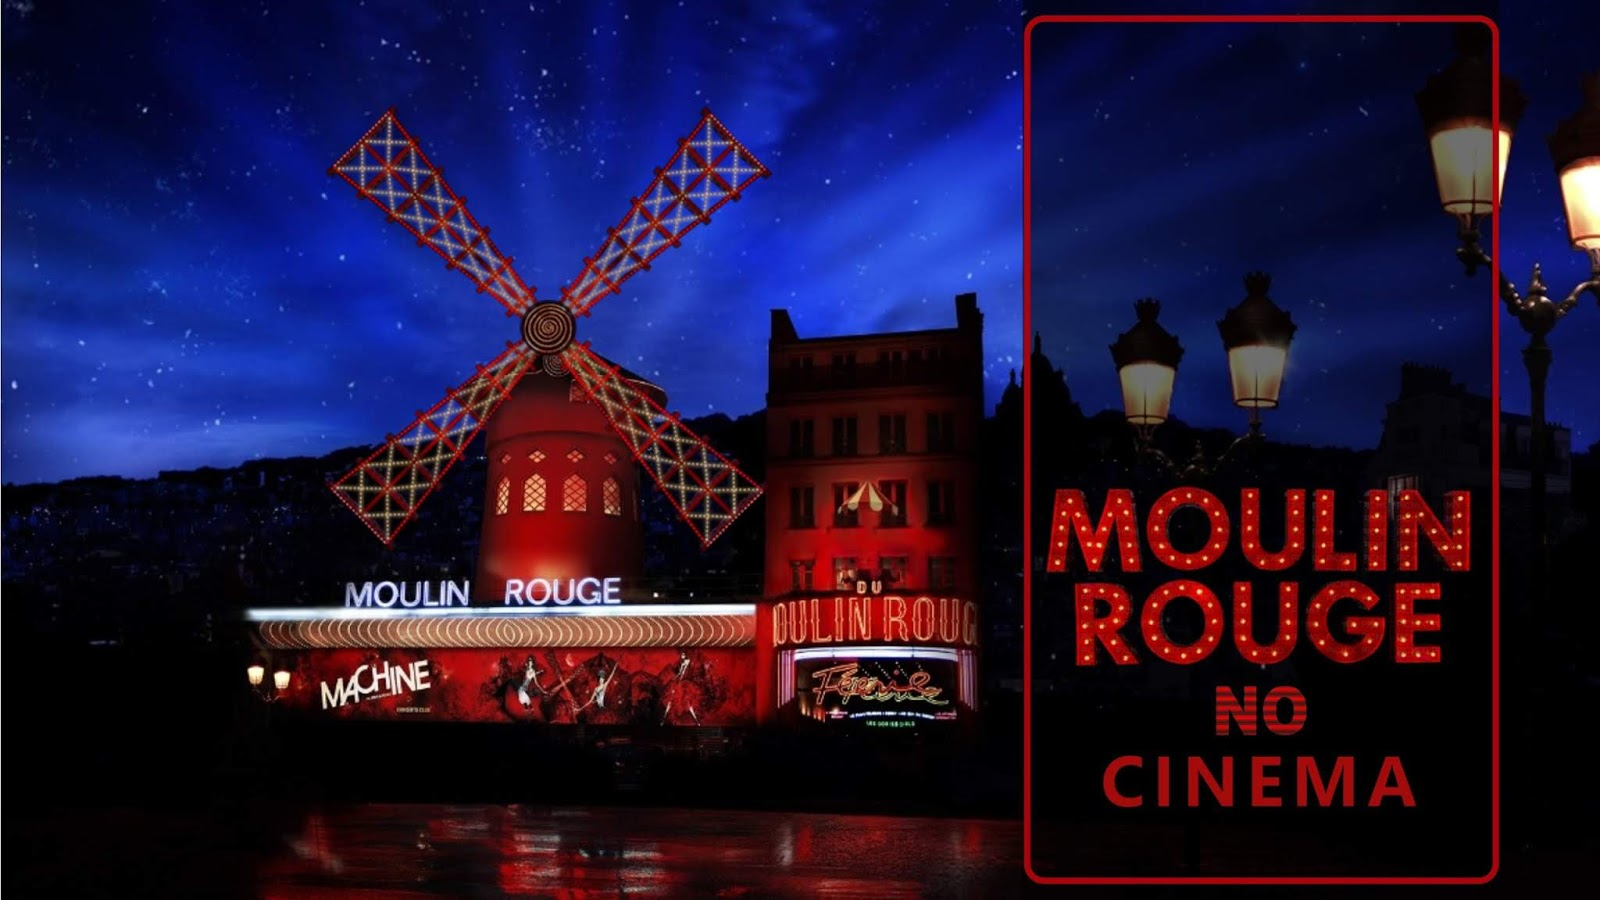 moulin-rouge-no-cinema